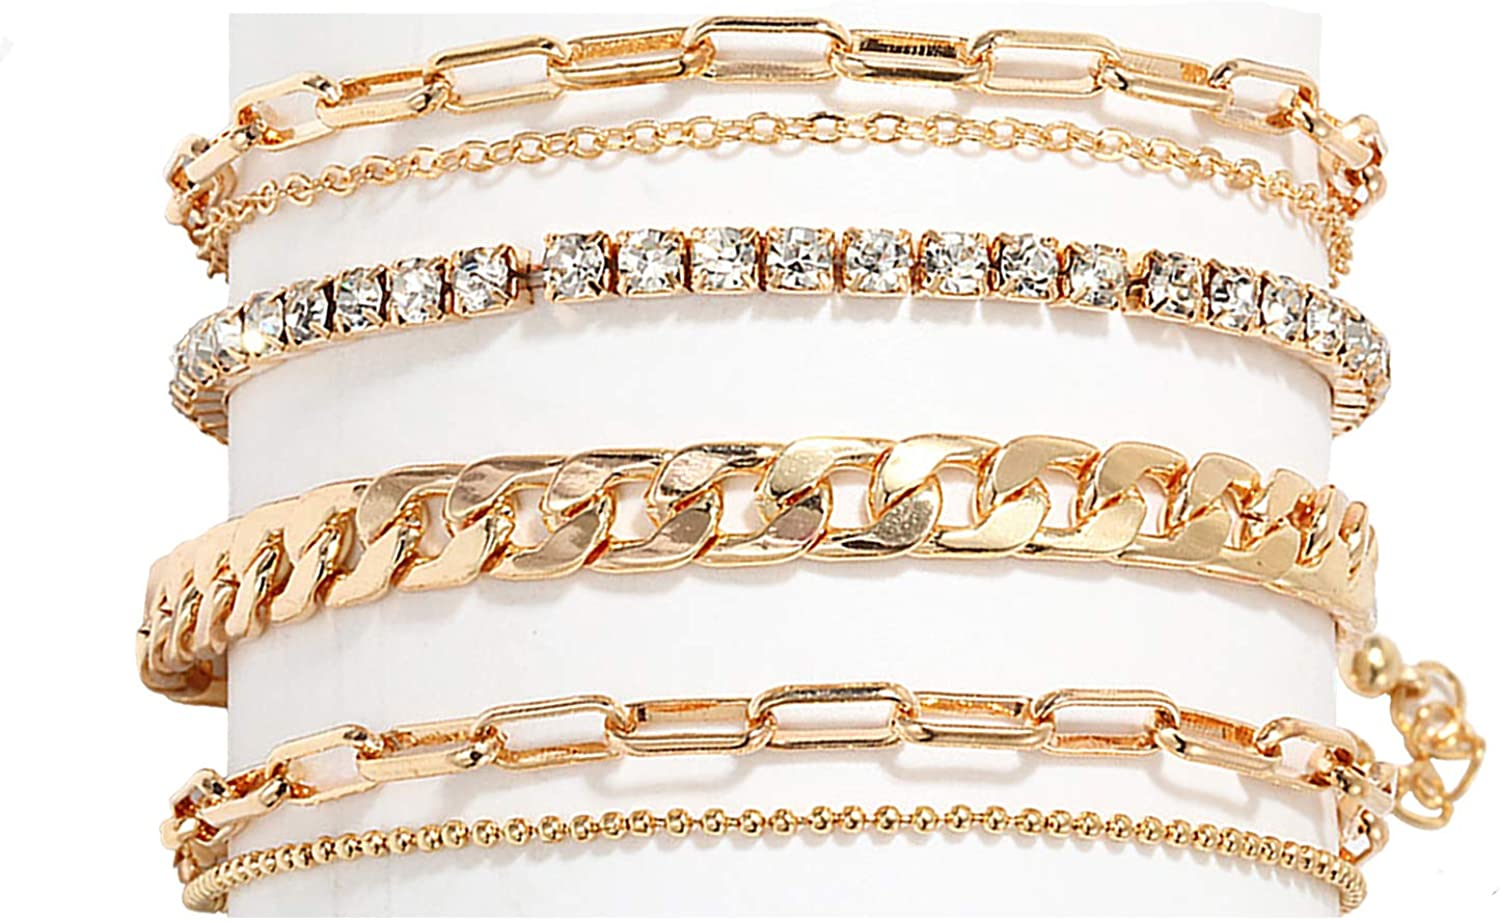 Nanafast 4-6PCS Ankle Bracelets Set for Women Gold Boho Beach Anklet Chain Adjustable Foot Jewelry for Girls Extremely Simple Style